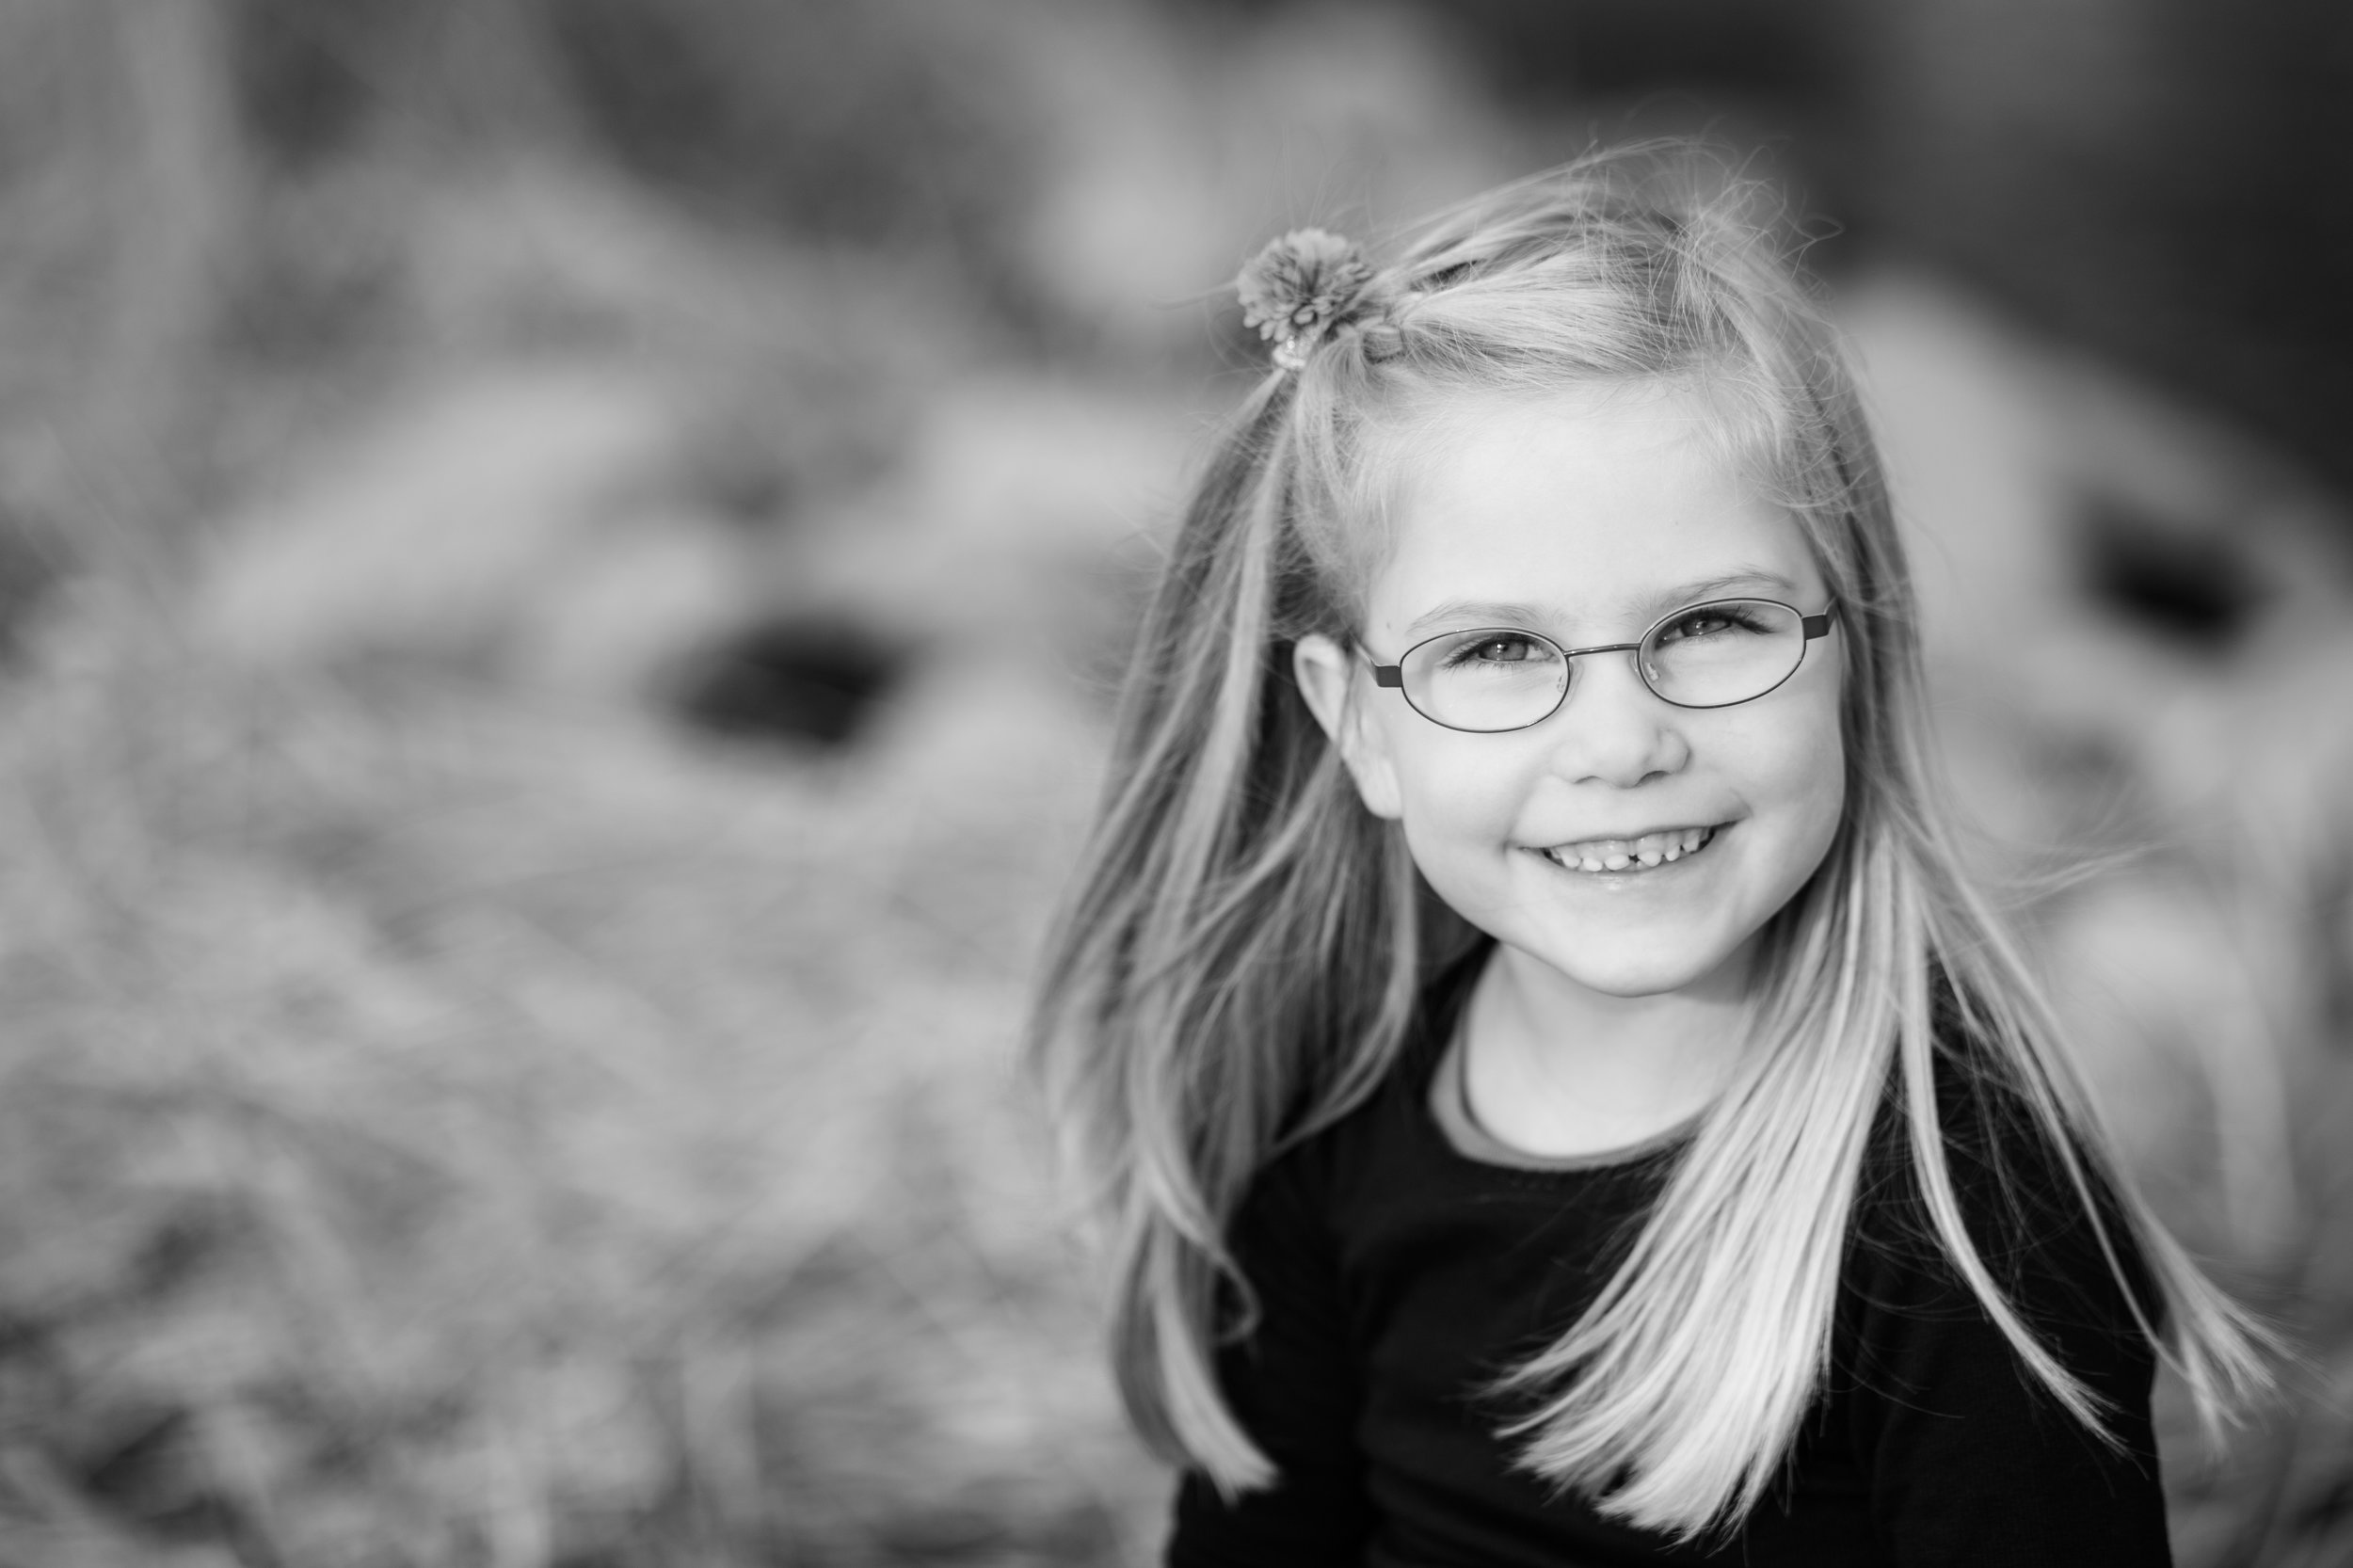 Canva - Grayscale Photography of Girl Smiling.jpg